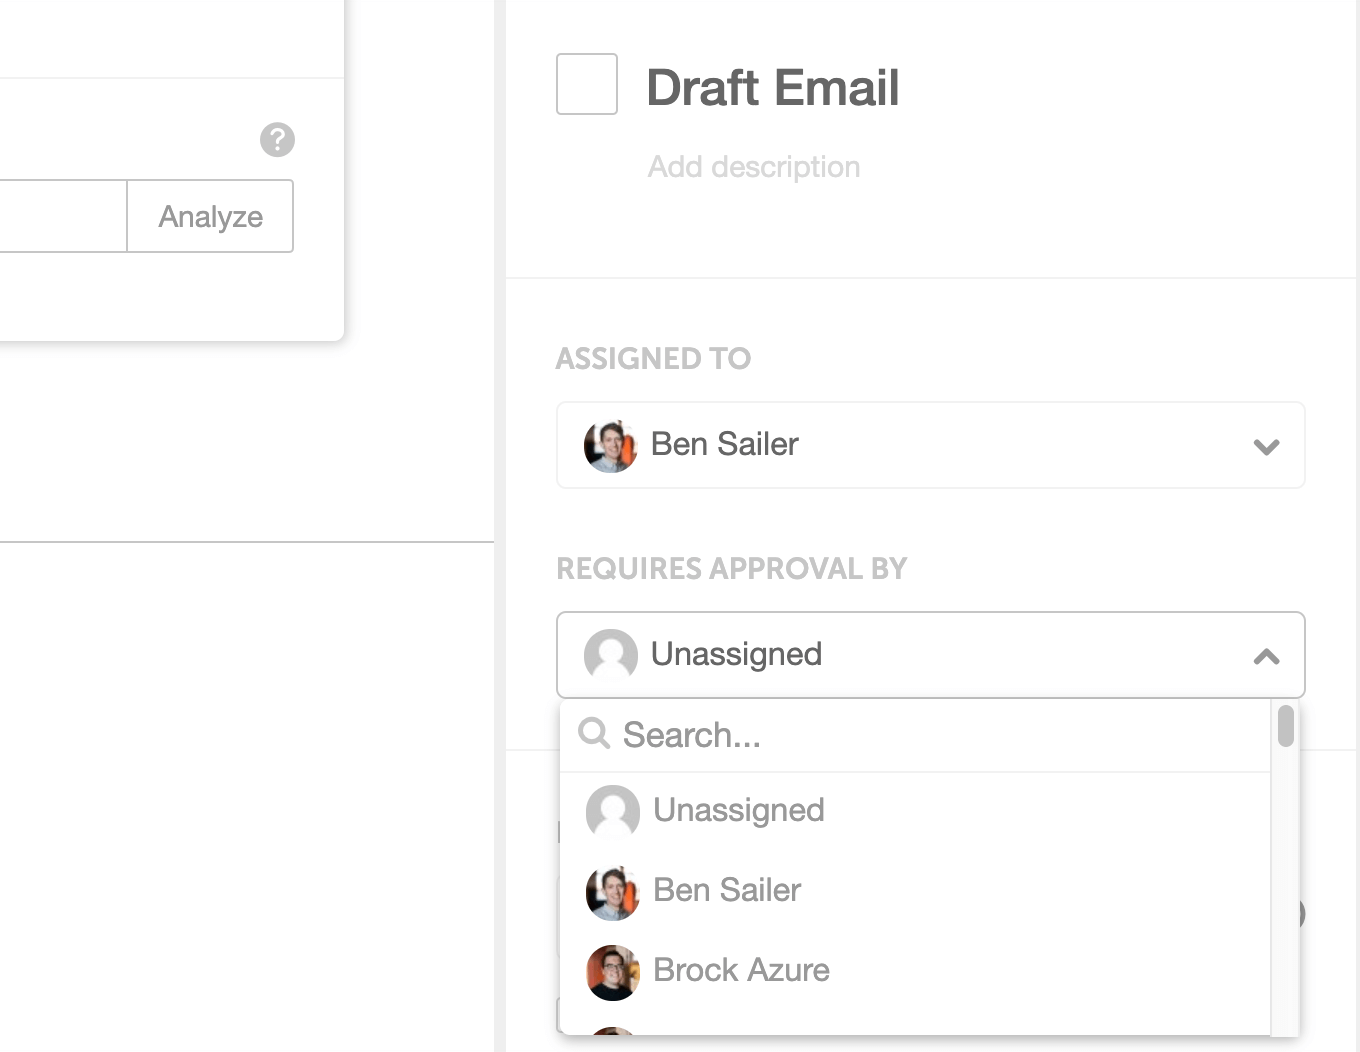 Assign tasks to team members and who the tasks need approval from